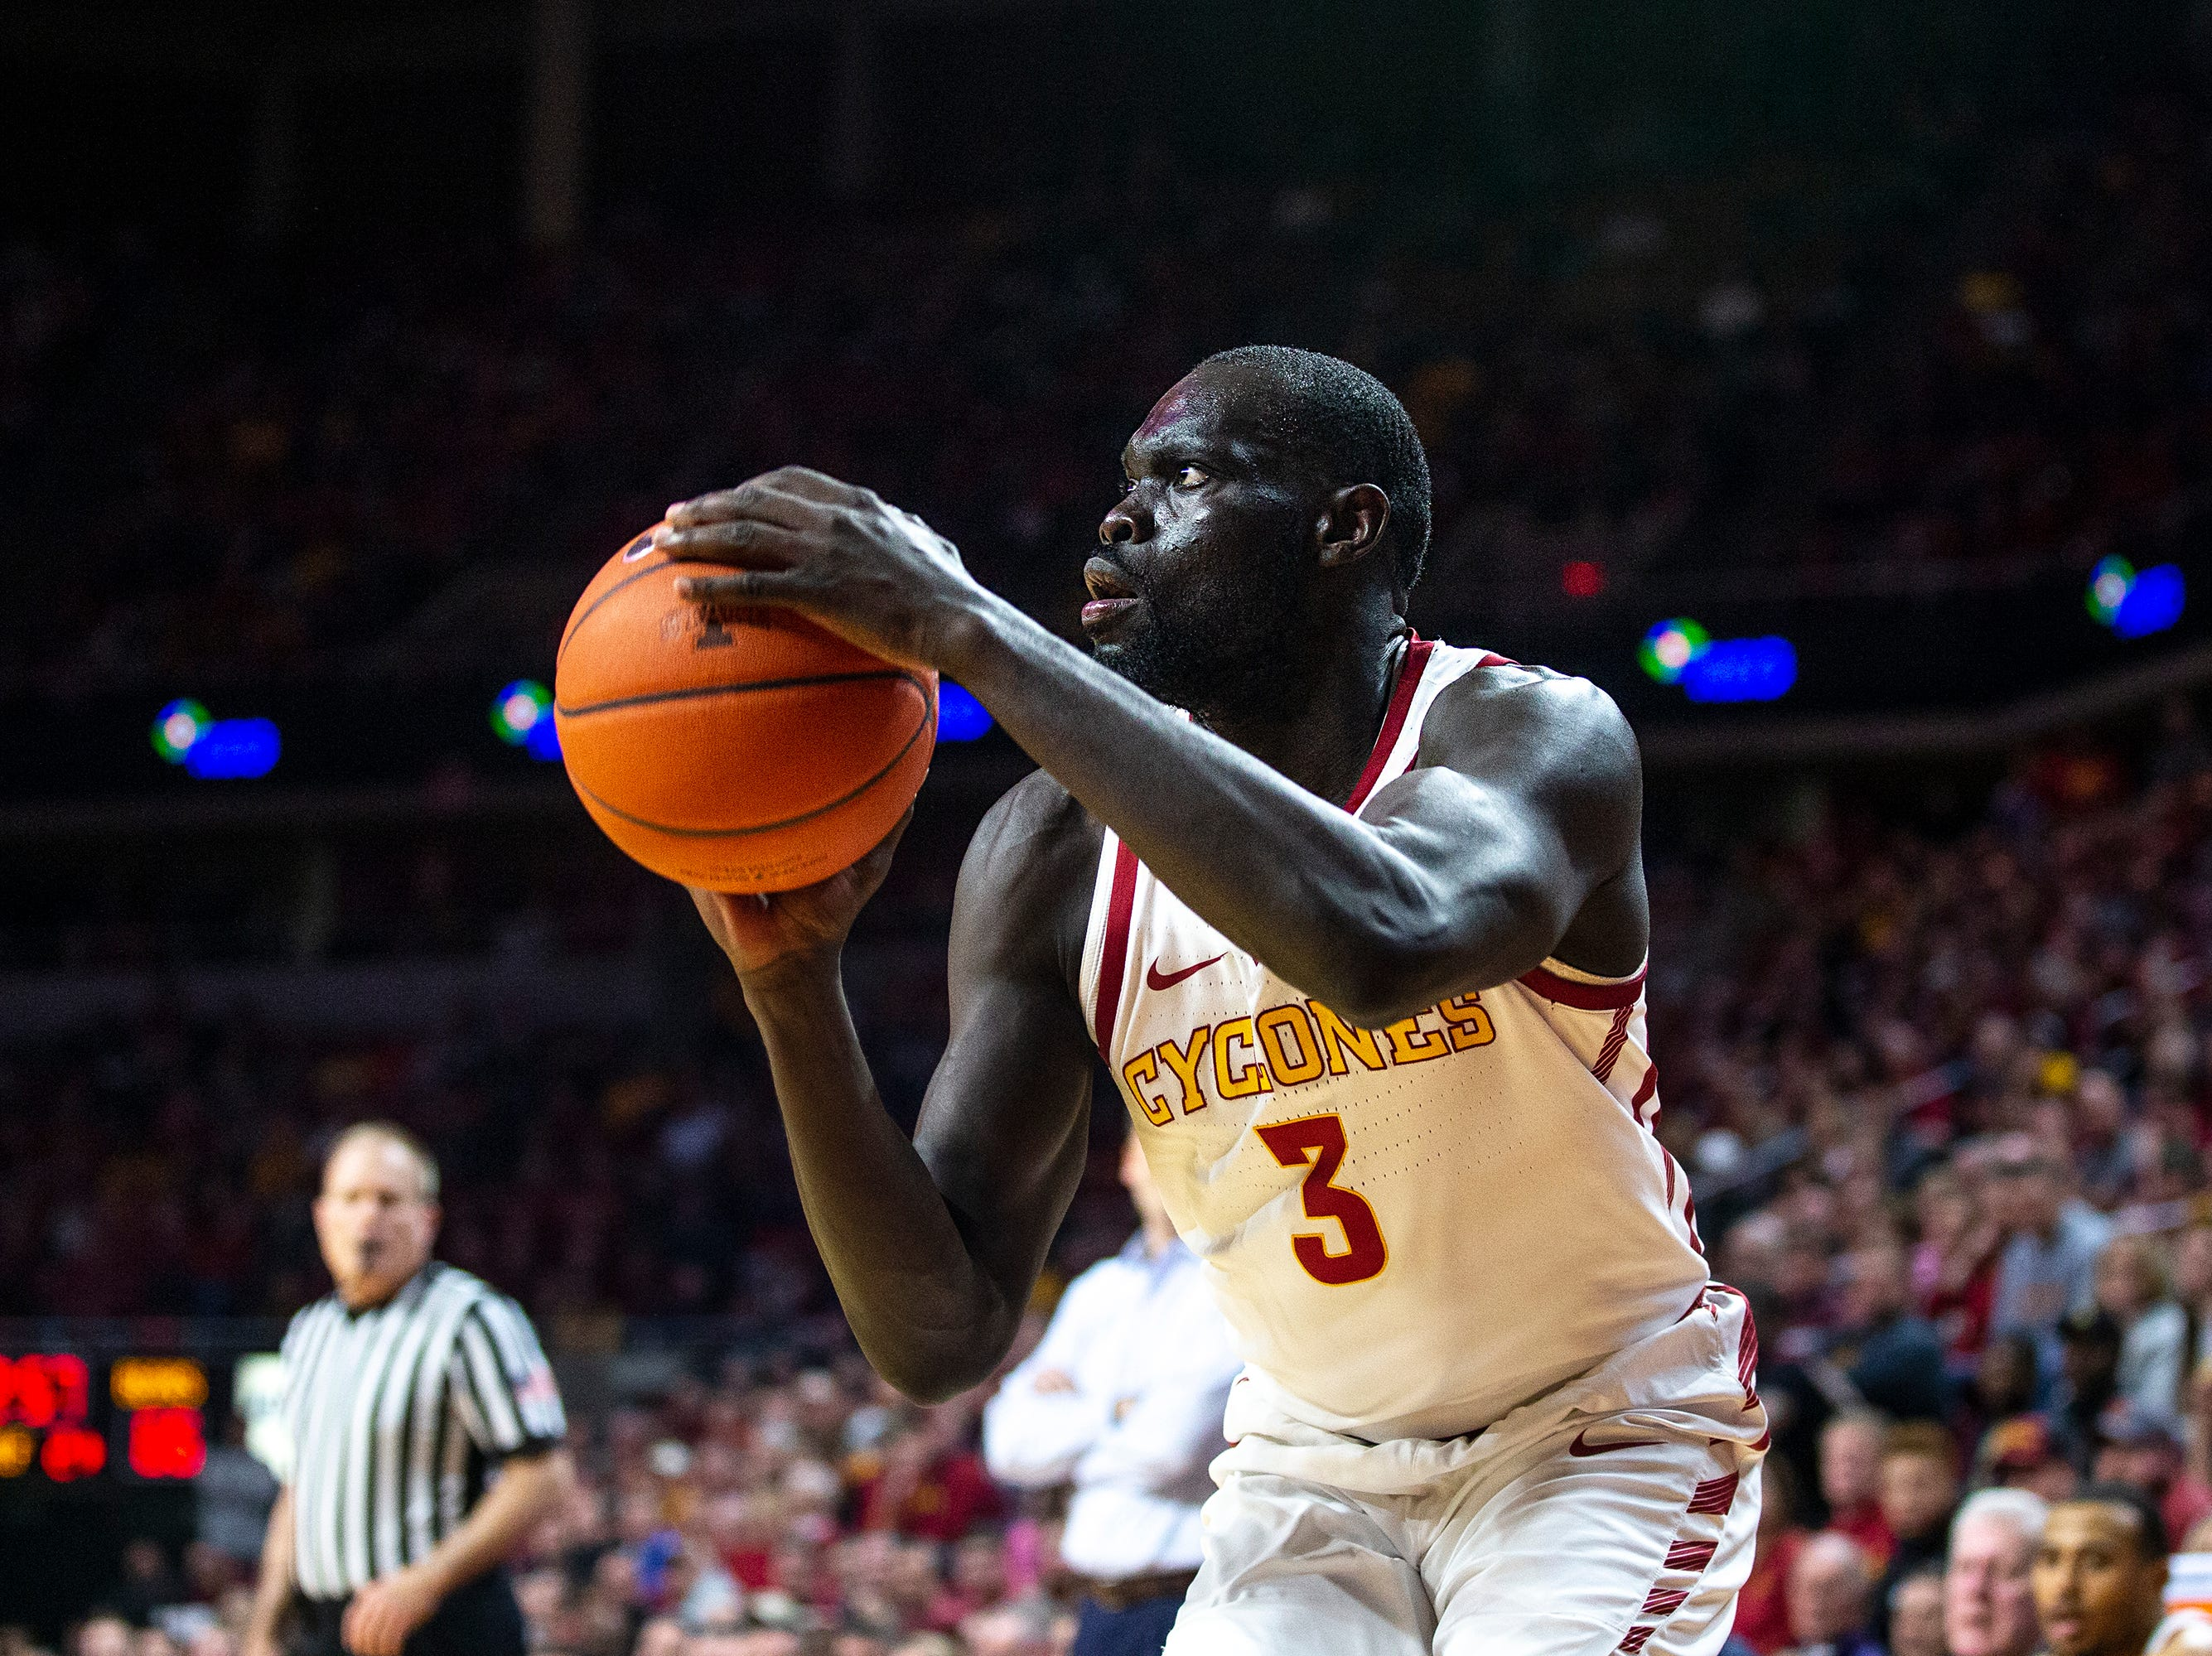 Iowa State's Marial Shayok shoots the ball during the Iowa State men's basketball game against Baylor on Tuesday, Feb. 19, 2019, in Hilton Coliseum. The Cyclones fell to the Bears 69-73.